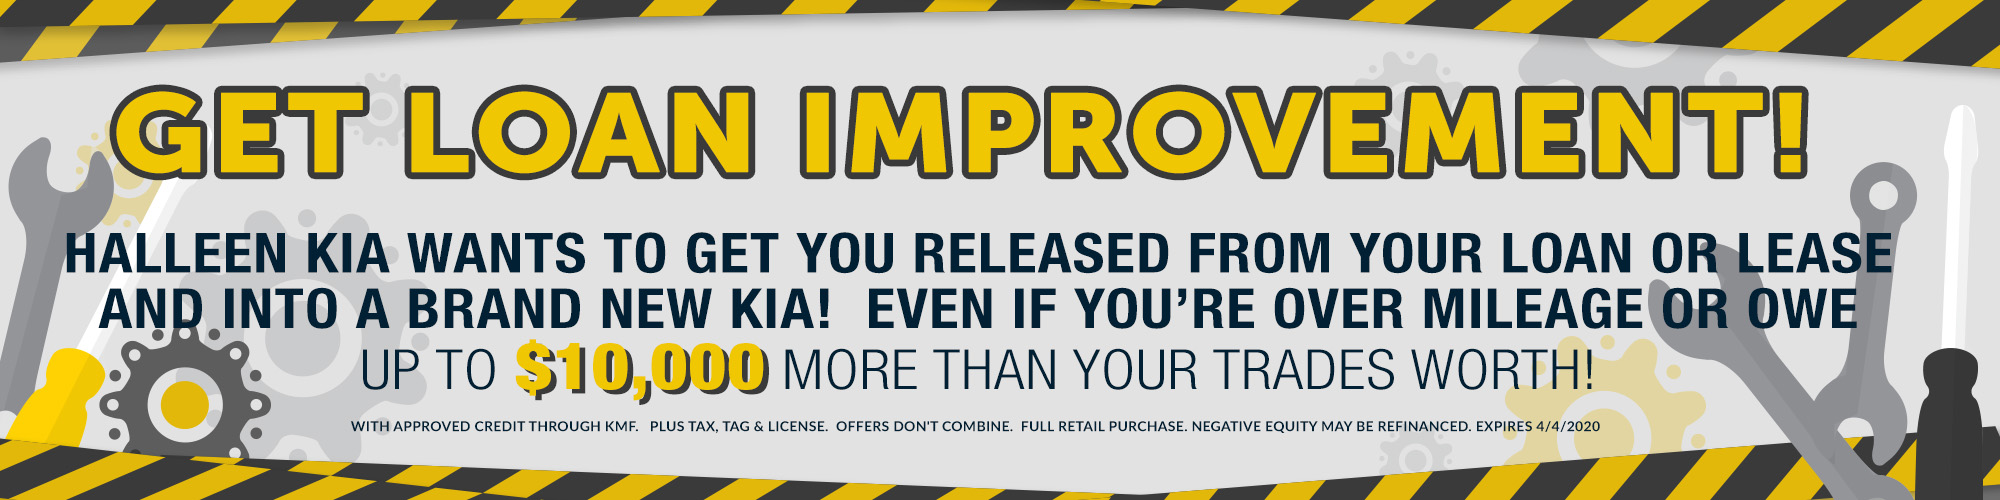 GET LOAN IMPROVEMENT!  HALLEEN KIA WANTS TO GET YOU RELEASED FROM YOUR LOAN OR LEASE AND INTO A BRAND NEW KIA!  EVEN IF YOU'RE OVER MILEAGE OR OWE UP TO $6,000 MORE THAN YOUR TRADES WORTH!